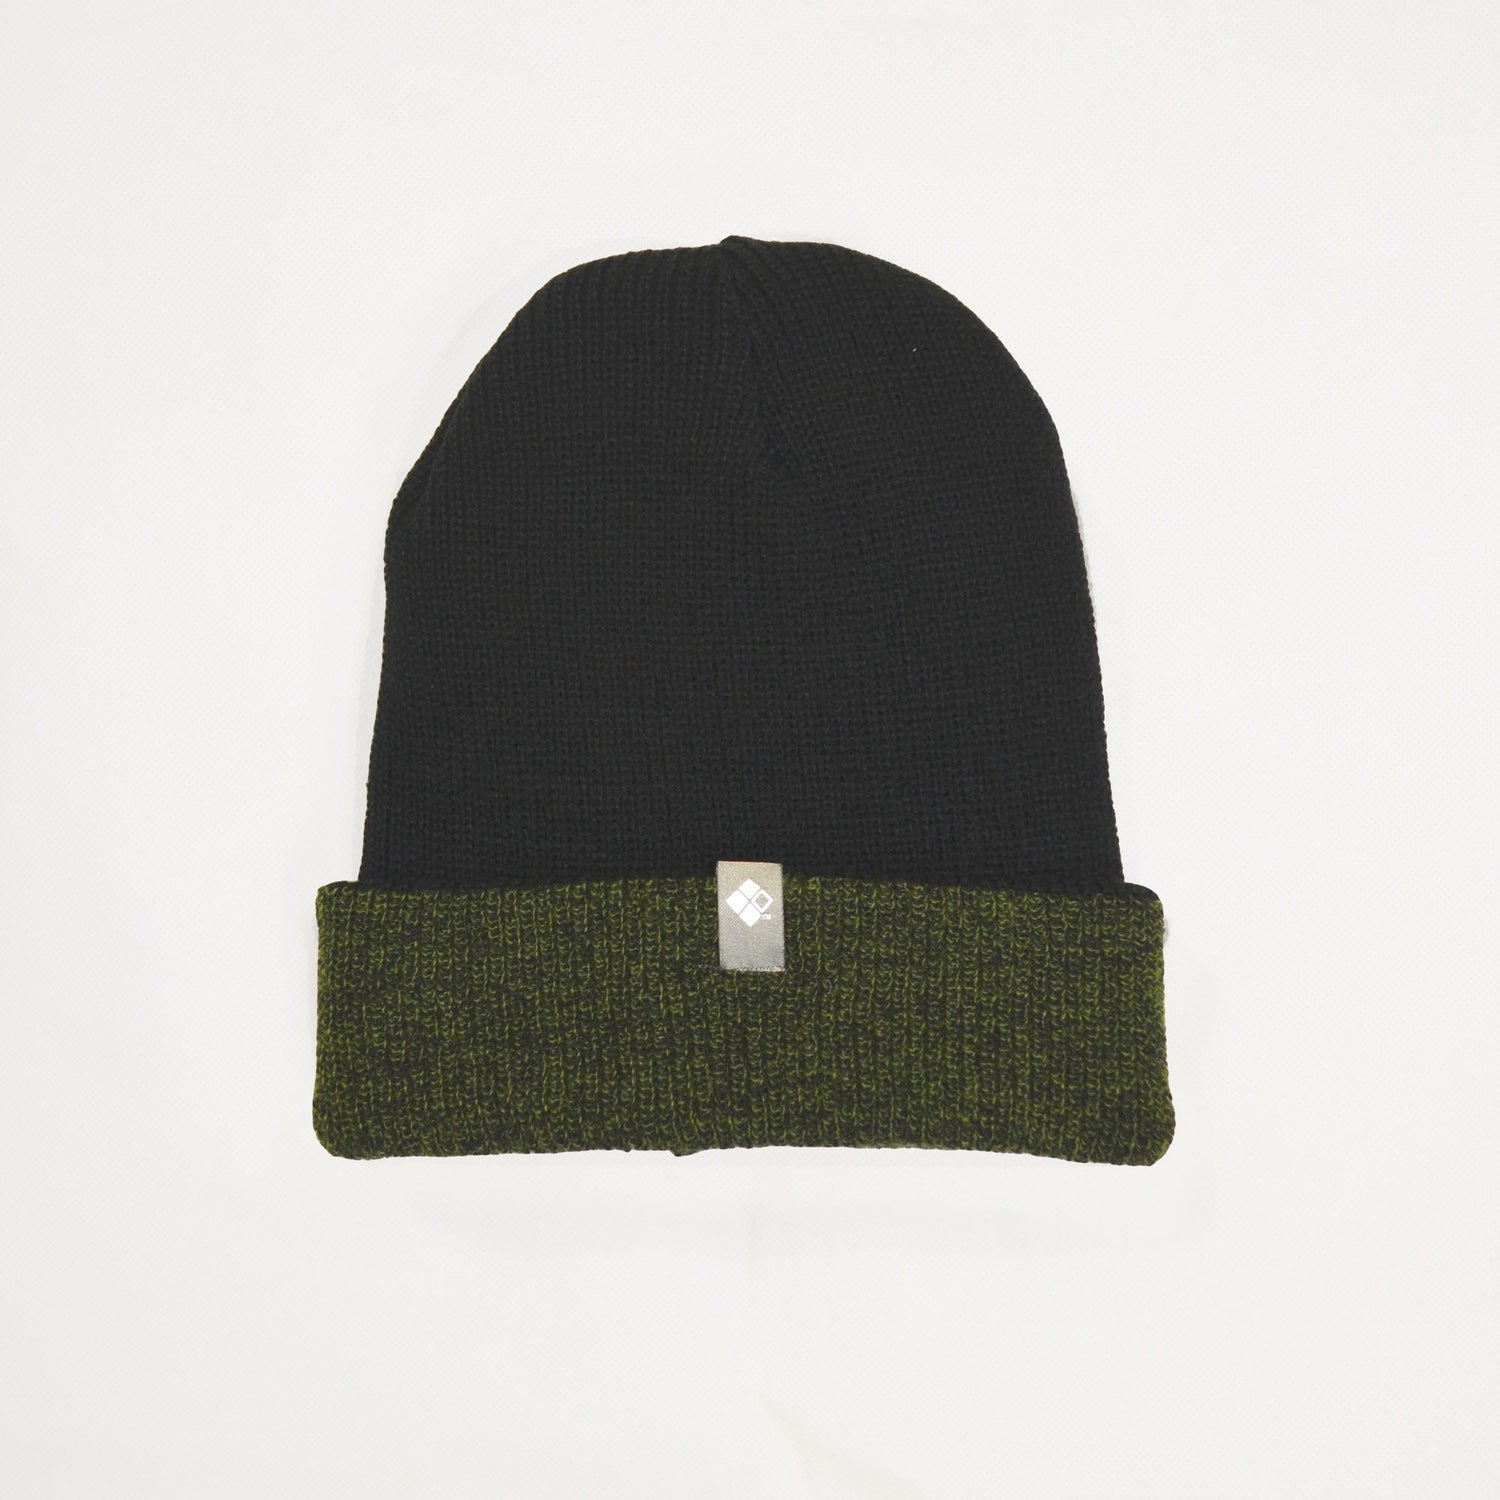 Image of Trailbuilder Reversible Beanie Hat